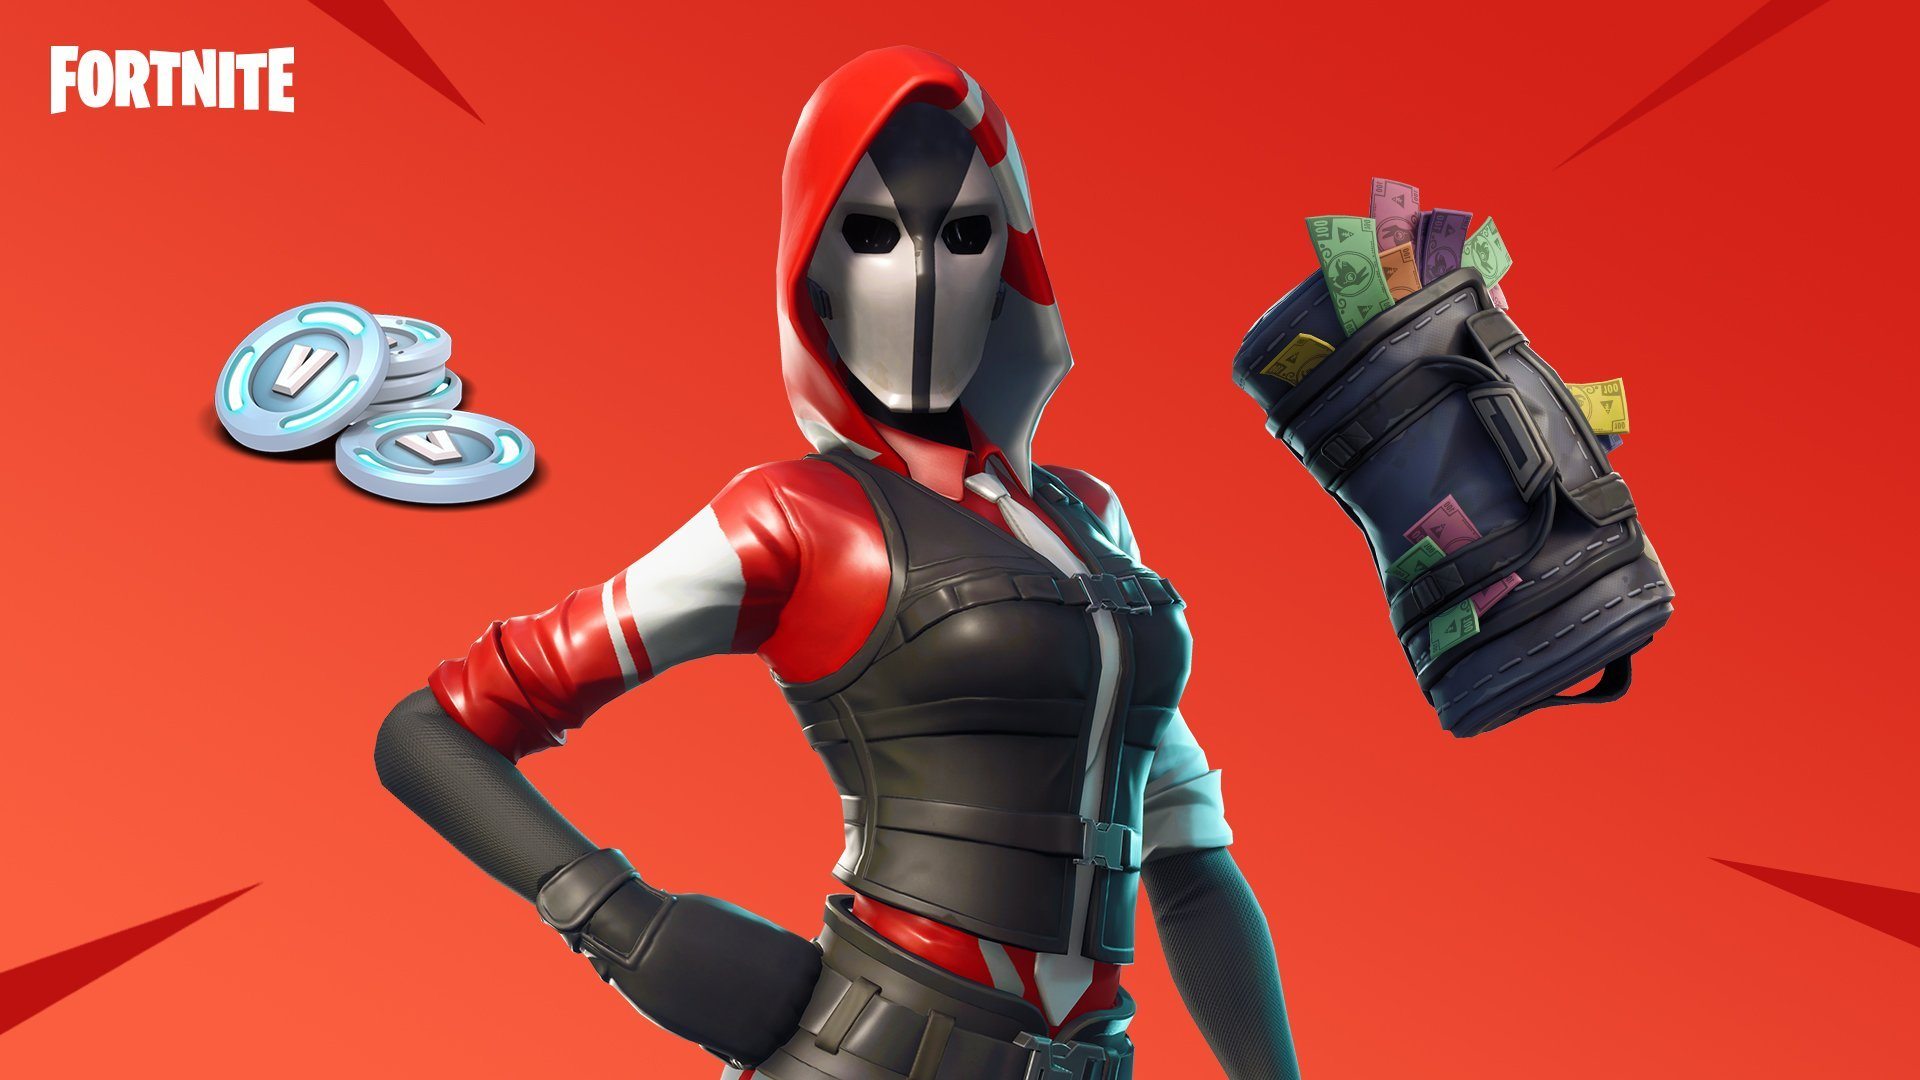 epic games brings another discounted v bucks and cosmetics pack to fortnite - fortnite space set